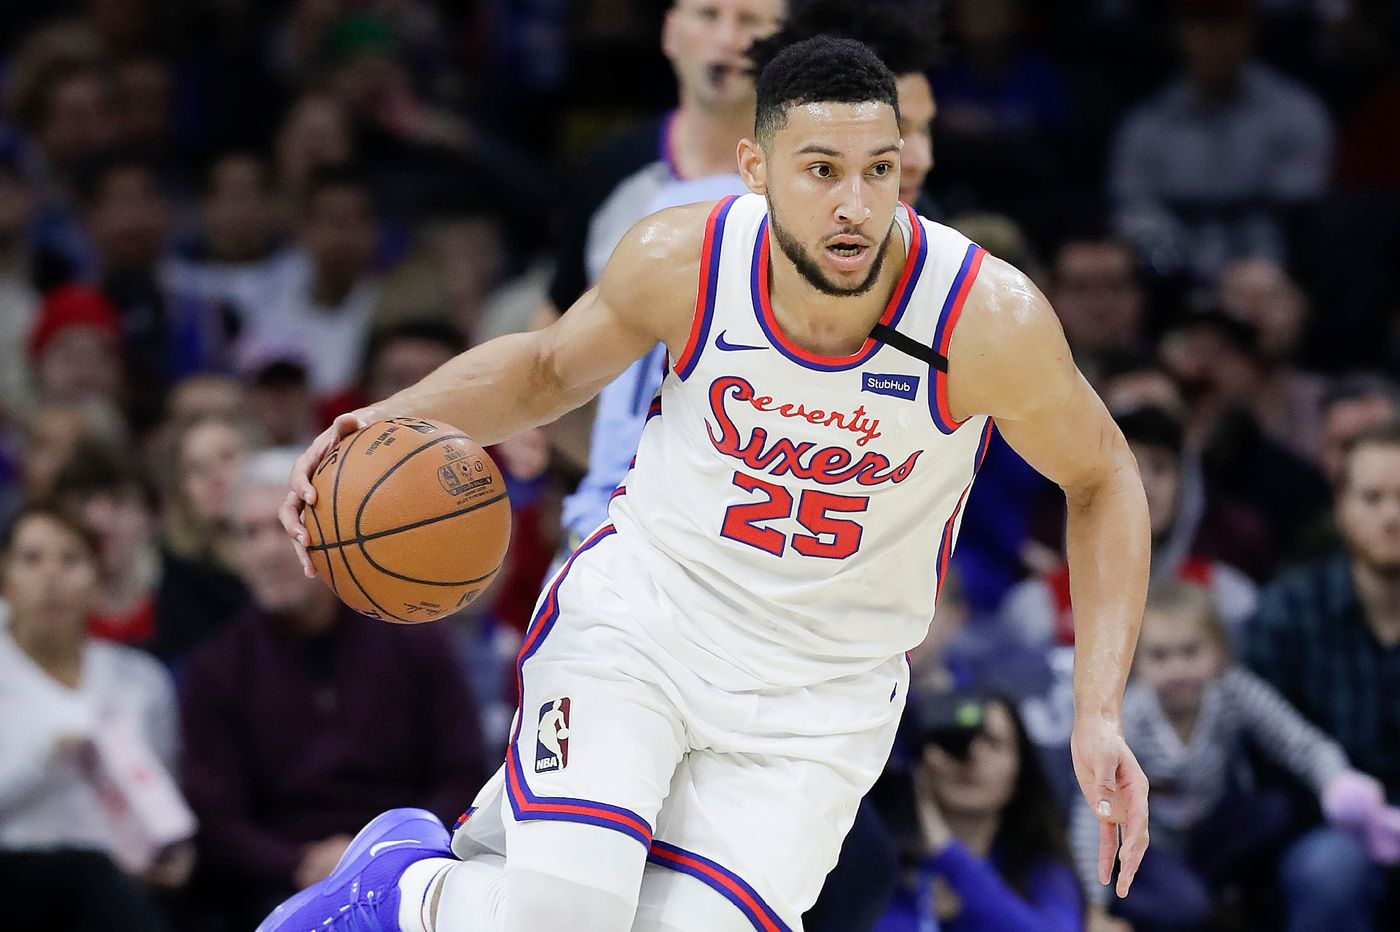 Ben Simmons puts on another show as Joel Embiid-less Sixers fall to Oklahoma City Thunder, 102-97